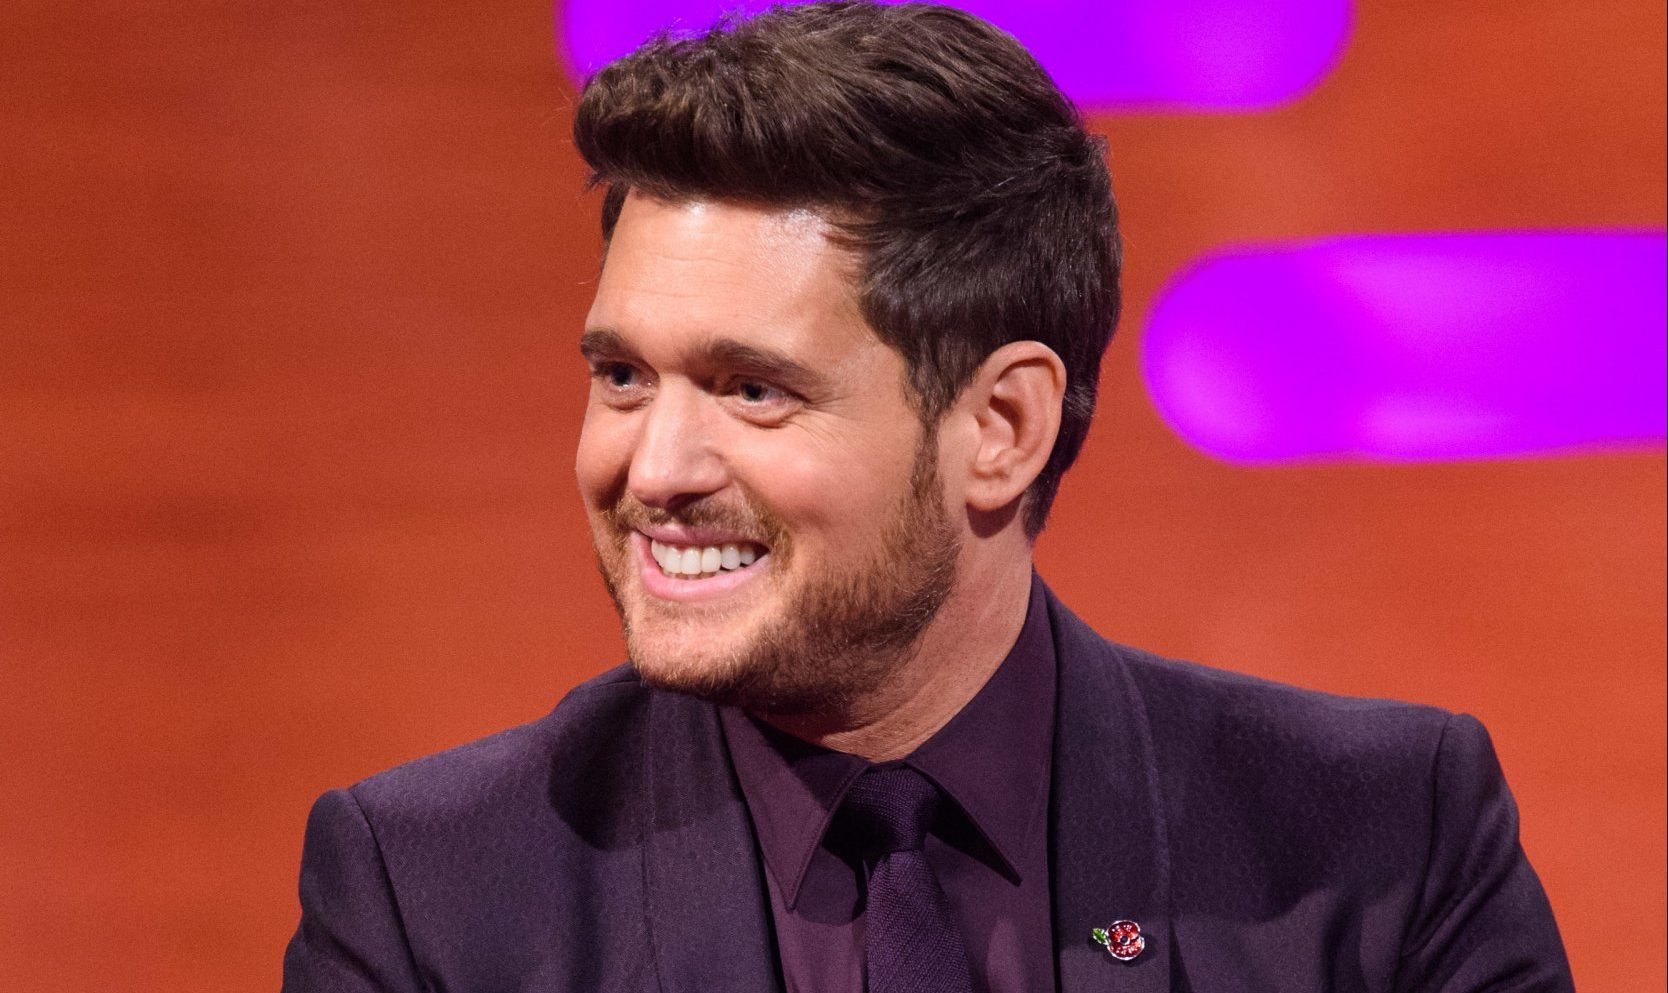 Michael Buble reveals 'painful' song on new album that he'll never sing live as he returns to music after son's cancer recovery